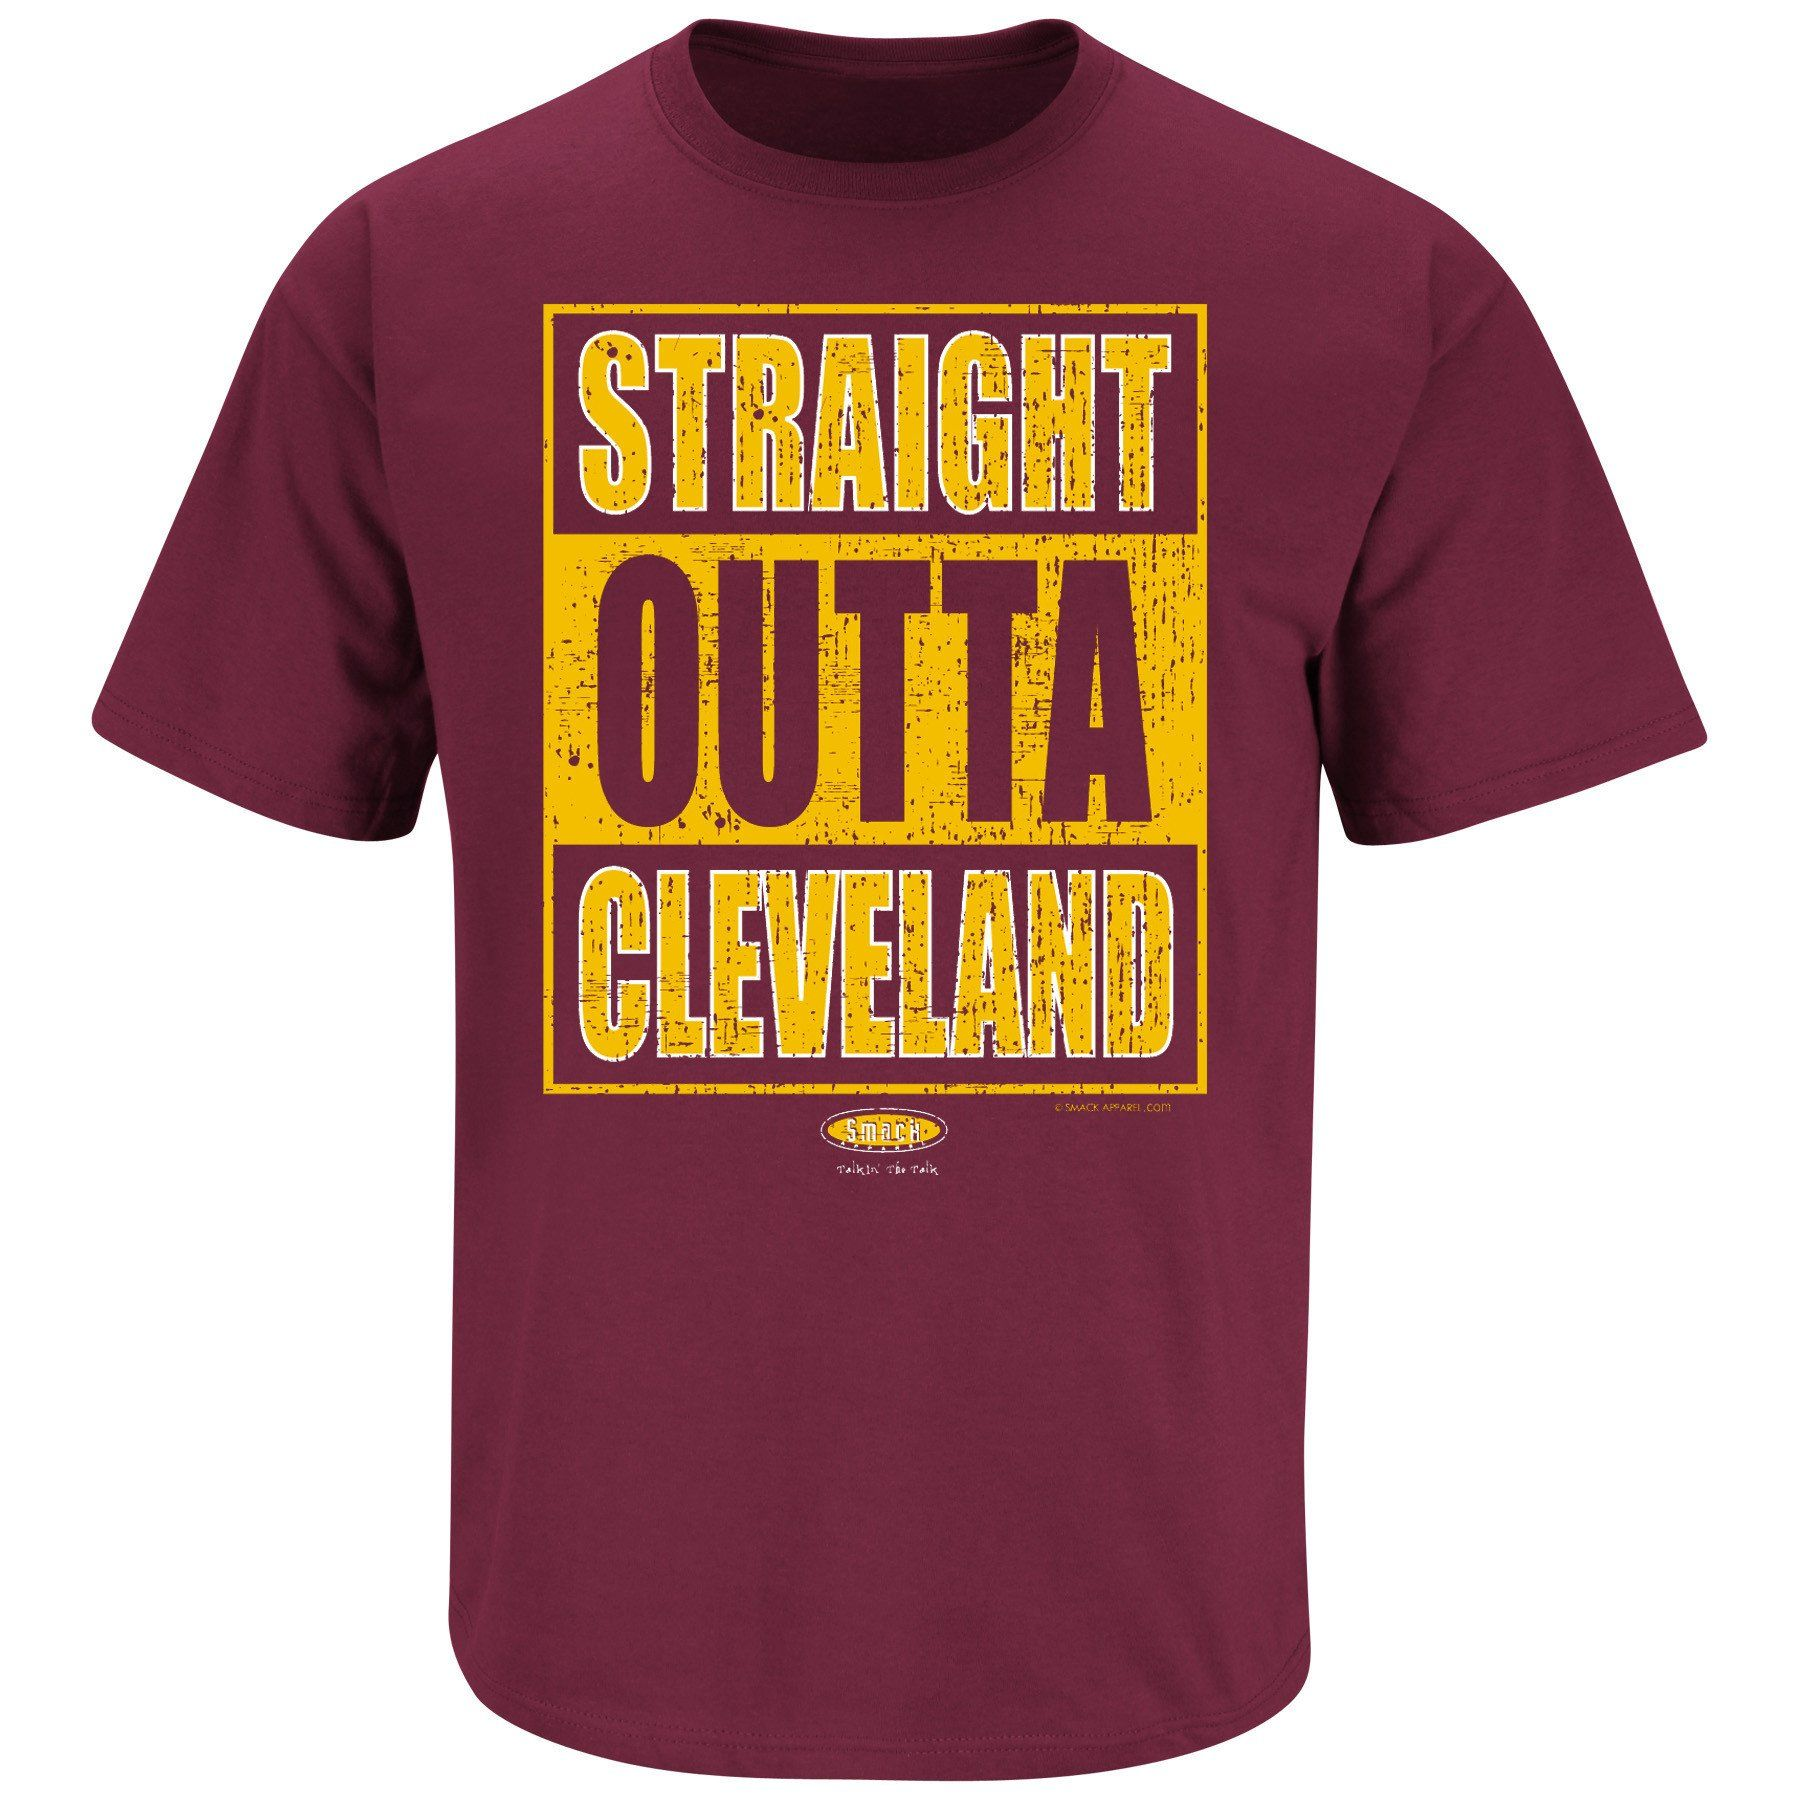 the best attitude 60ddd 88640 Cleveland Cavaliers Fans. Straight Outta Cleveland. T-Shirt ...